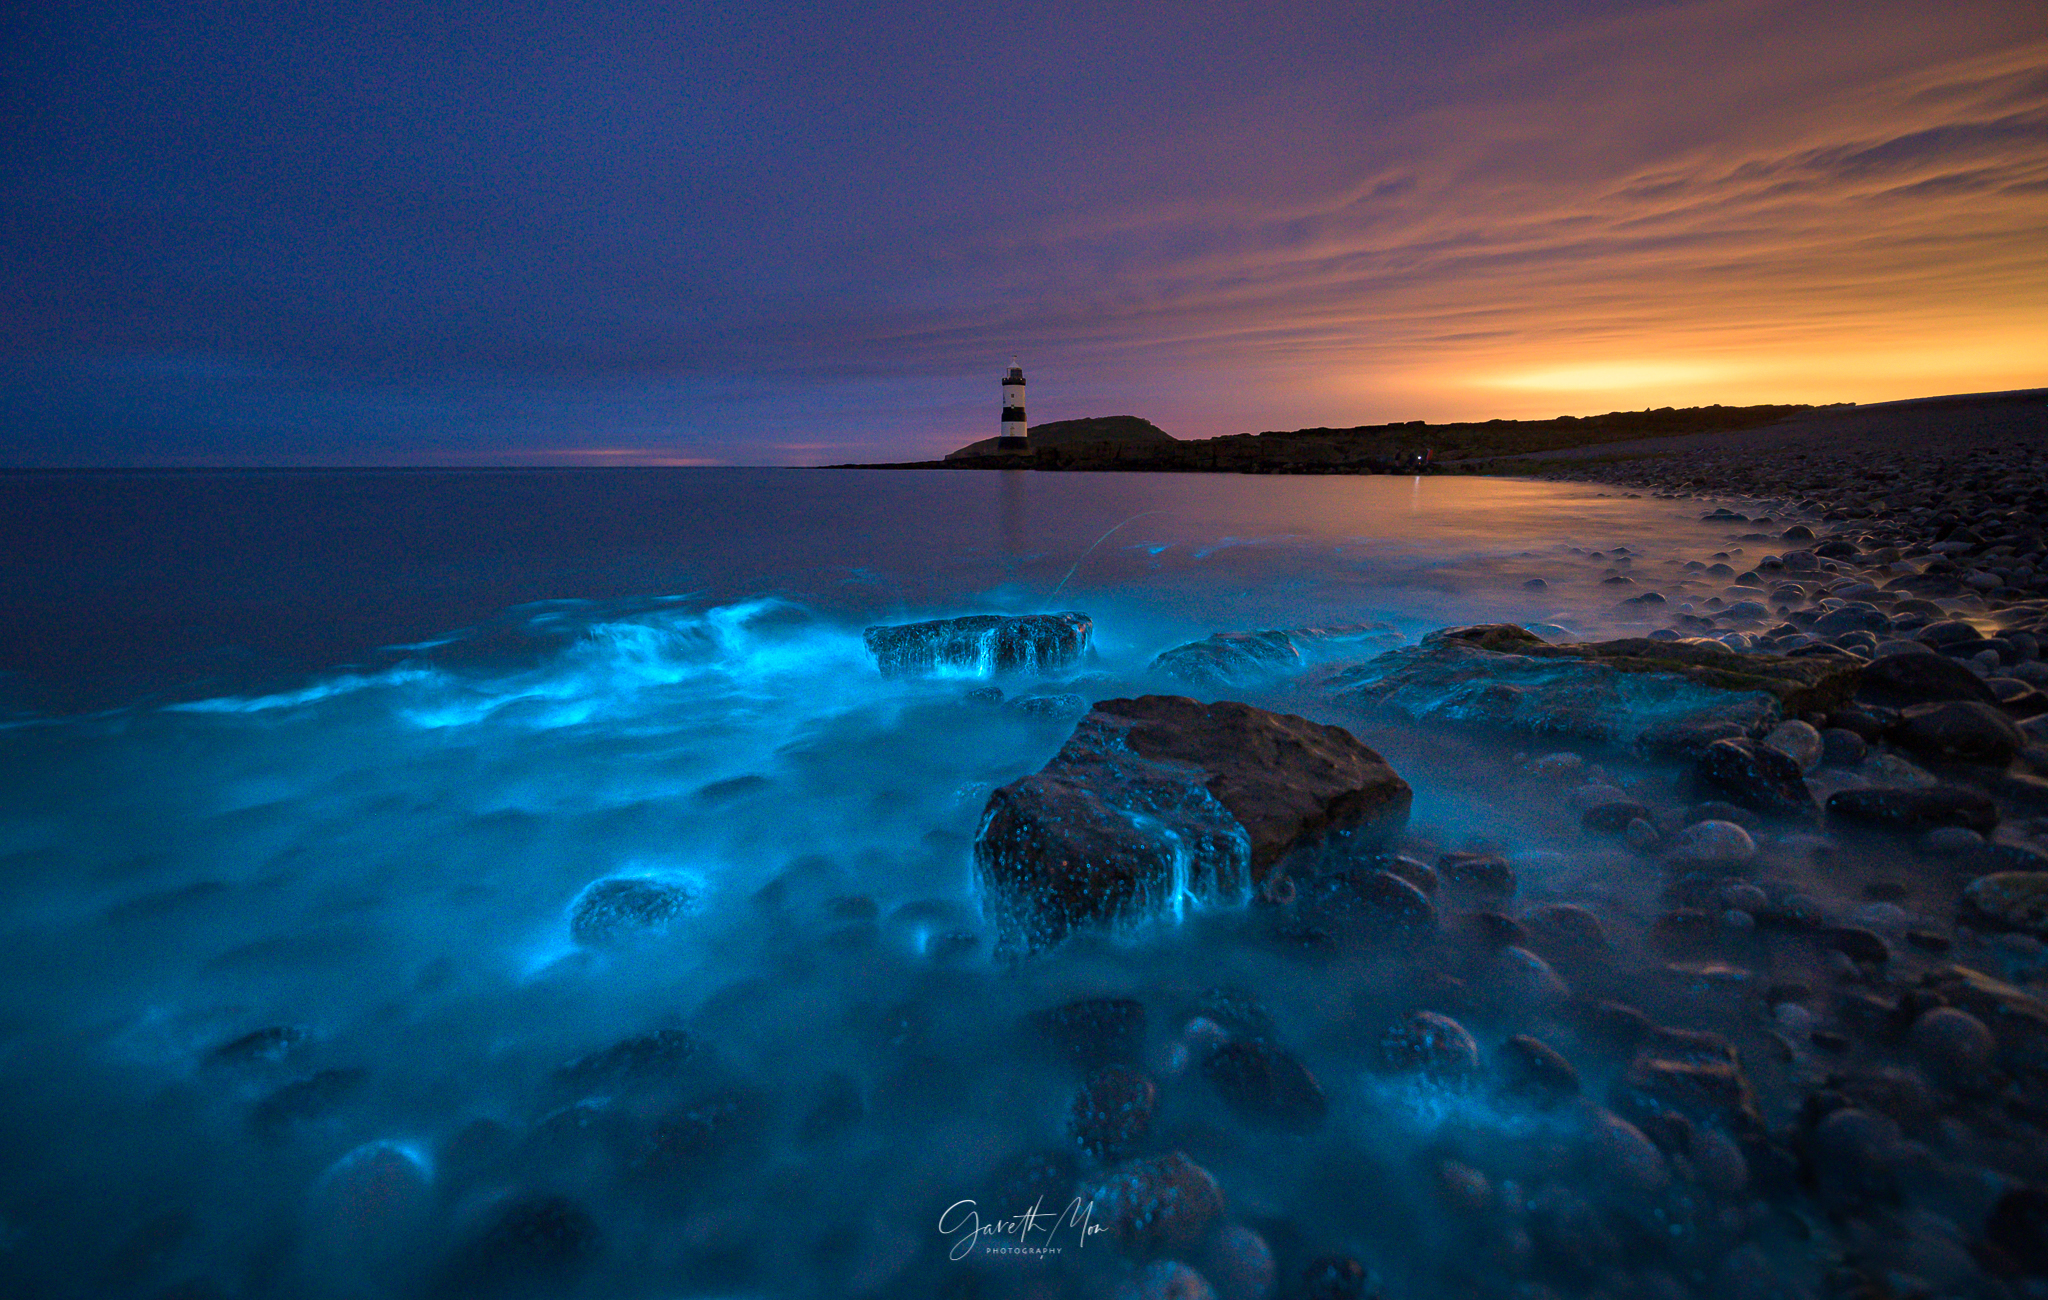 Electric Seas by Gareth Mon Photography